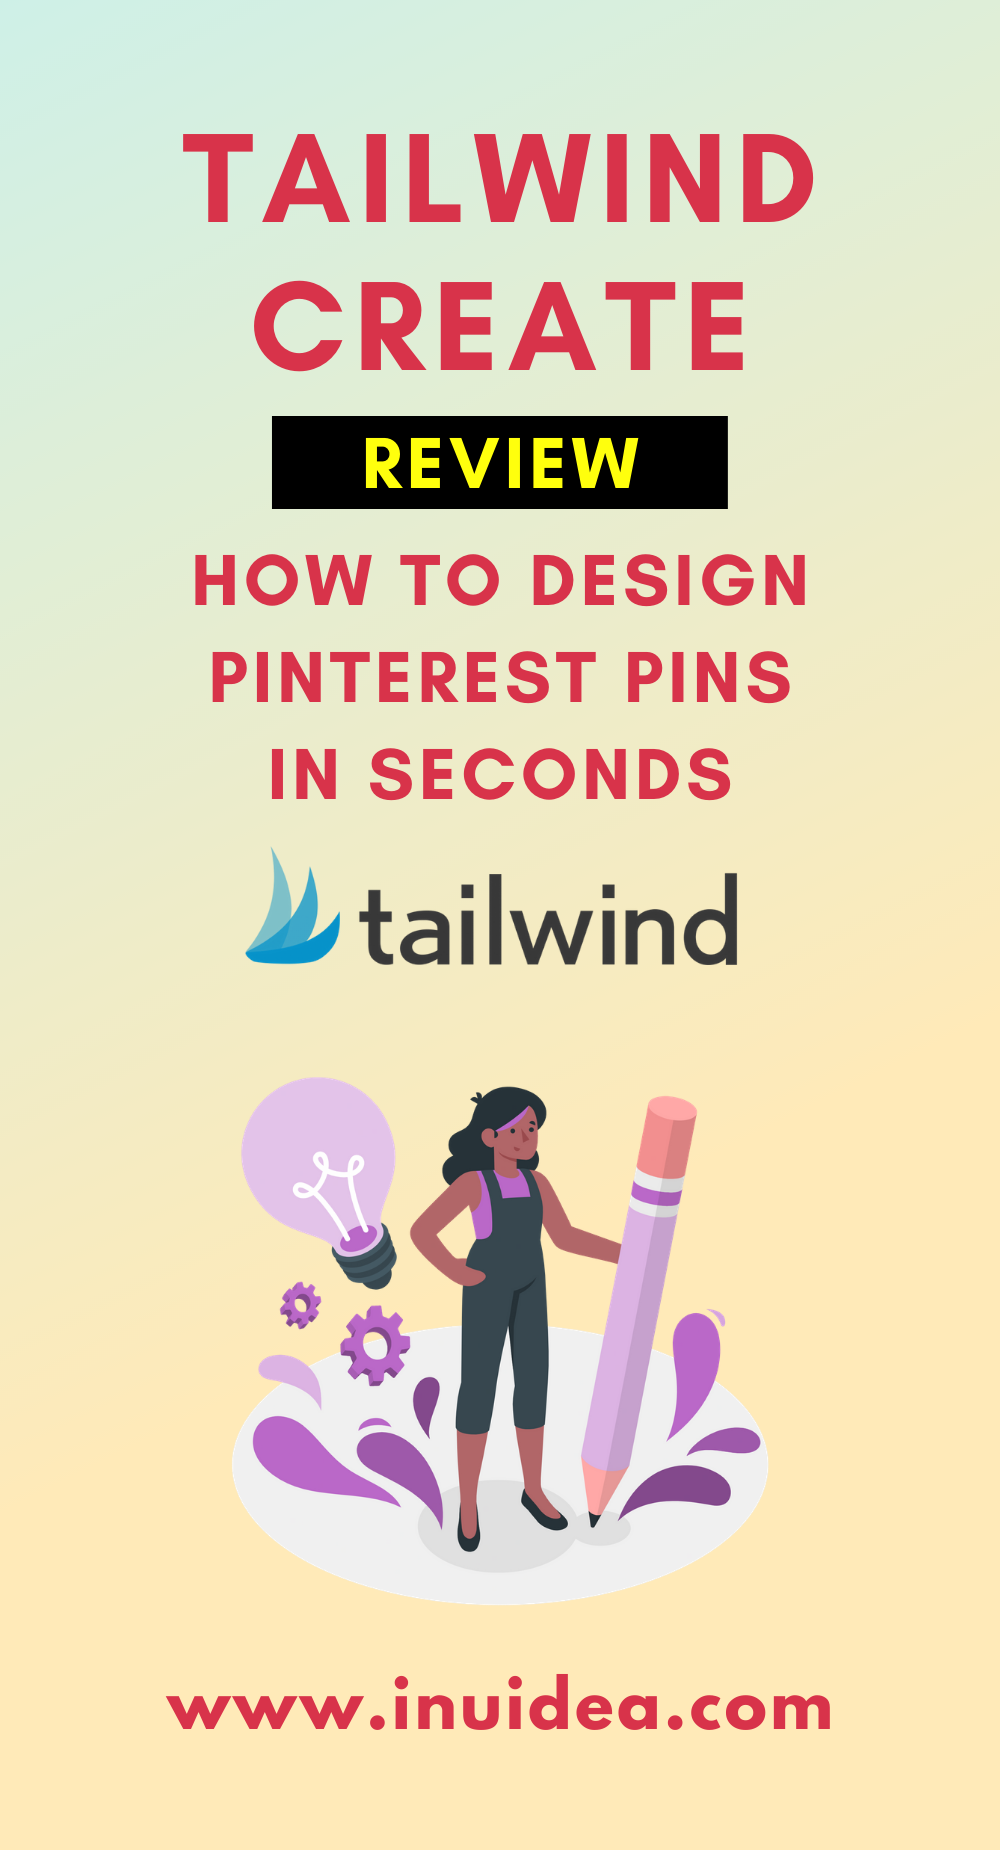 Tailwind-Create-Review-How-to-Design-Pinterest-Pins-in-Seconds